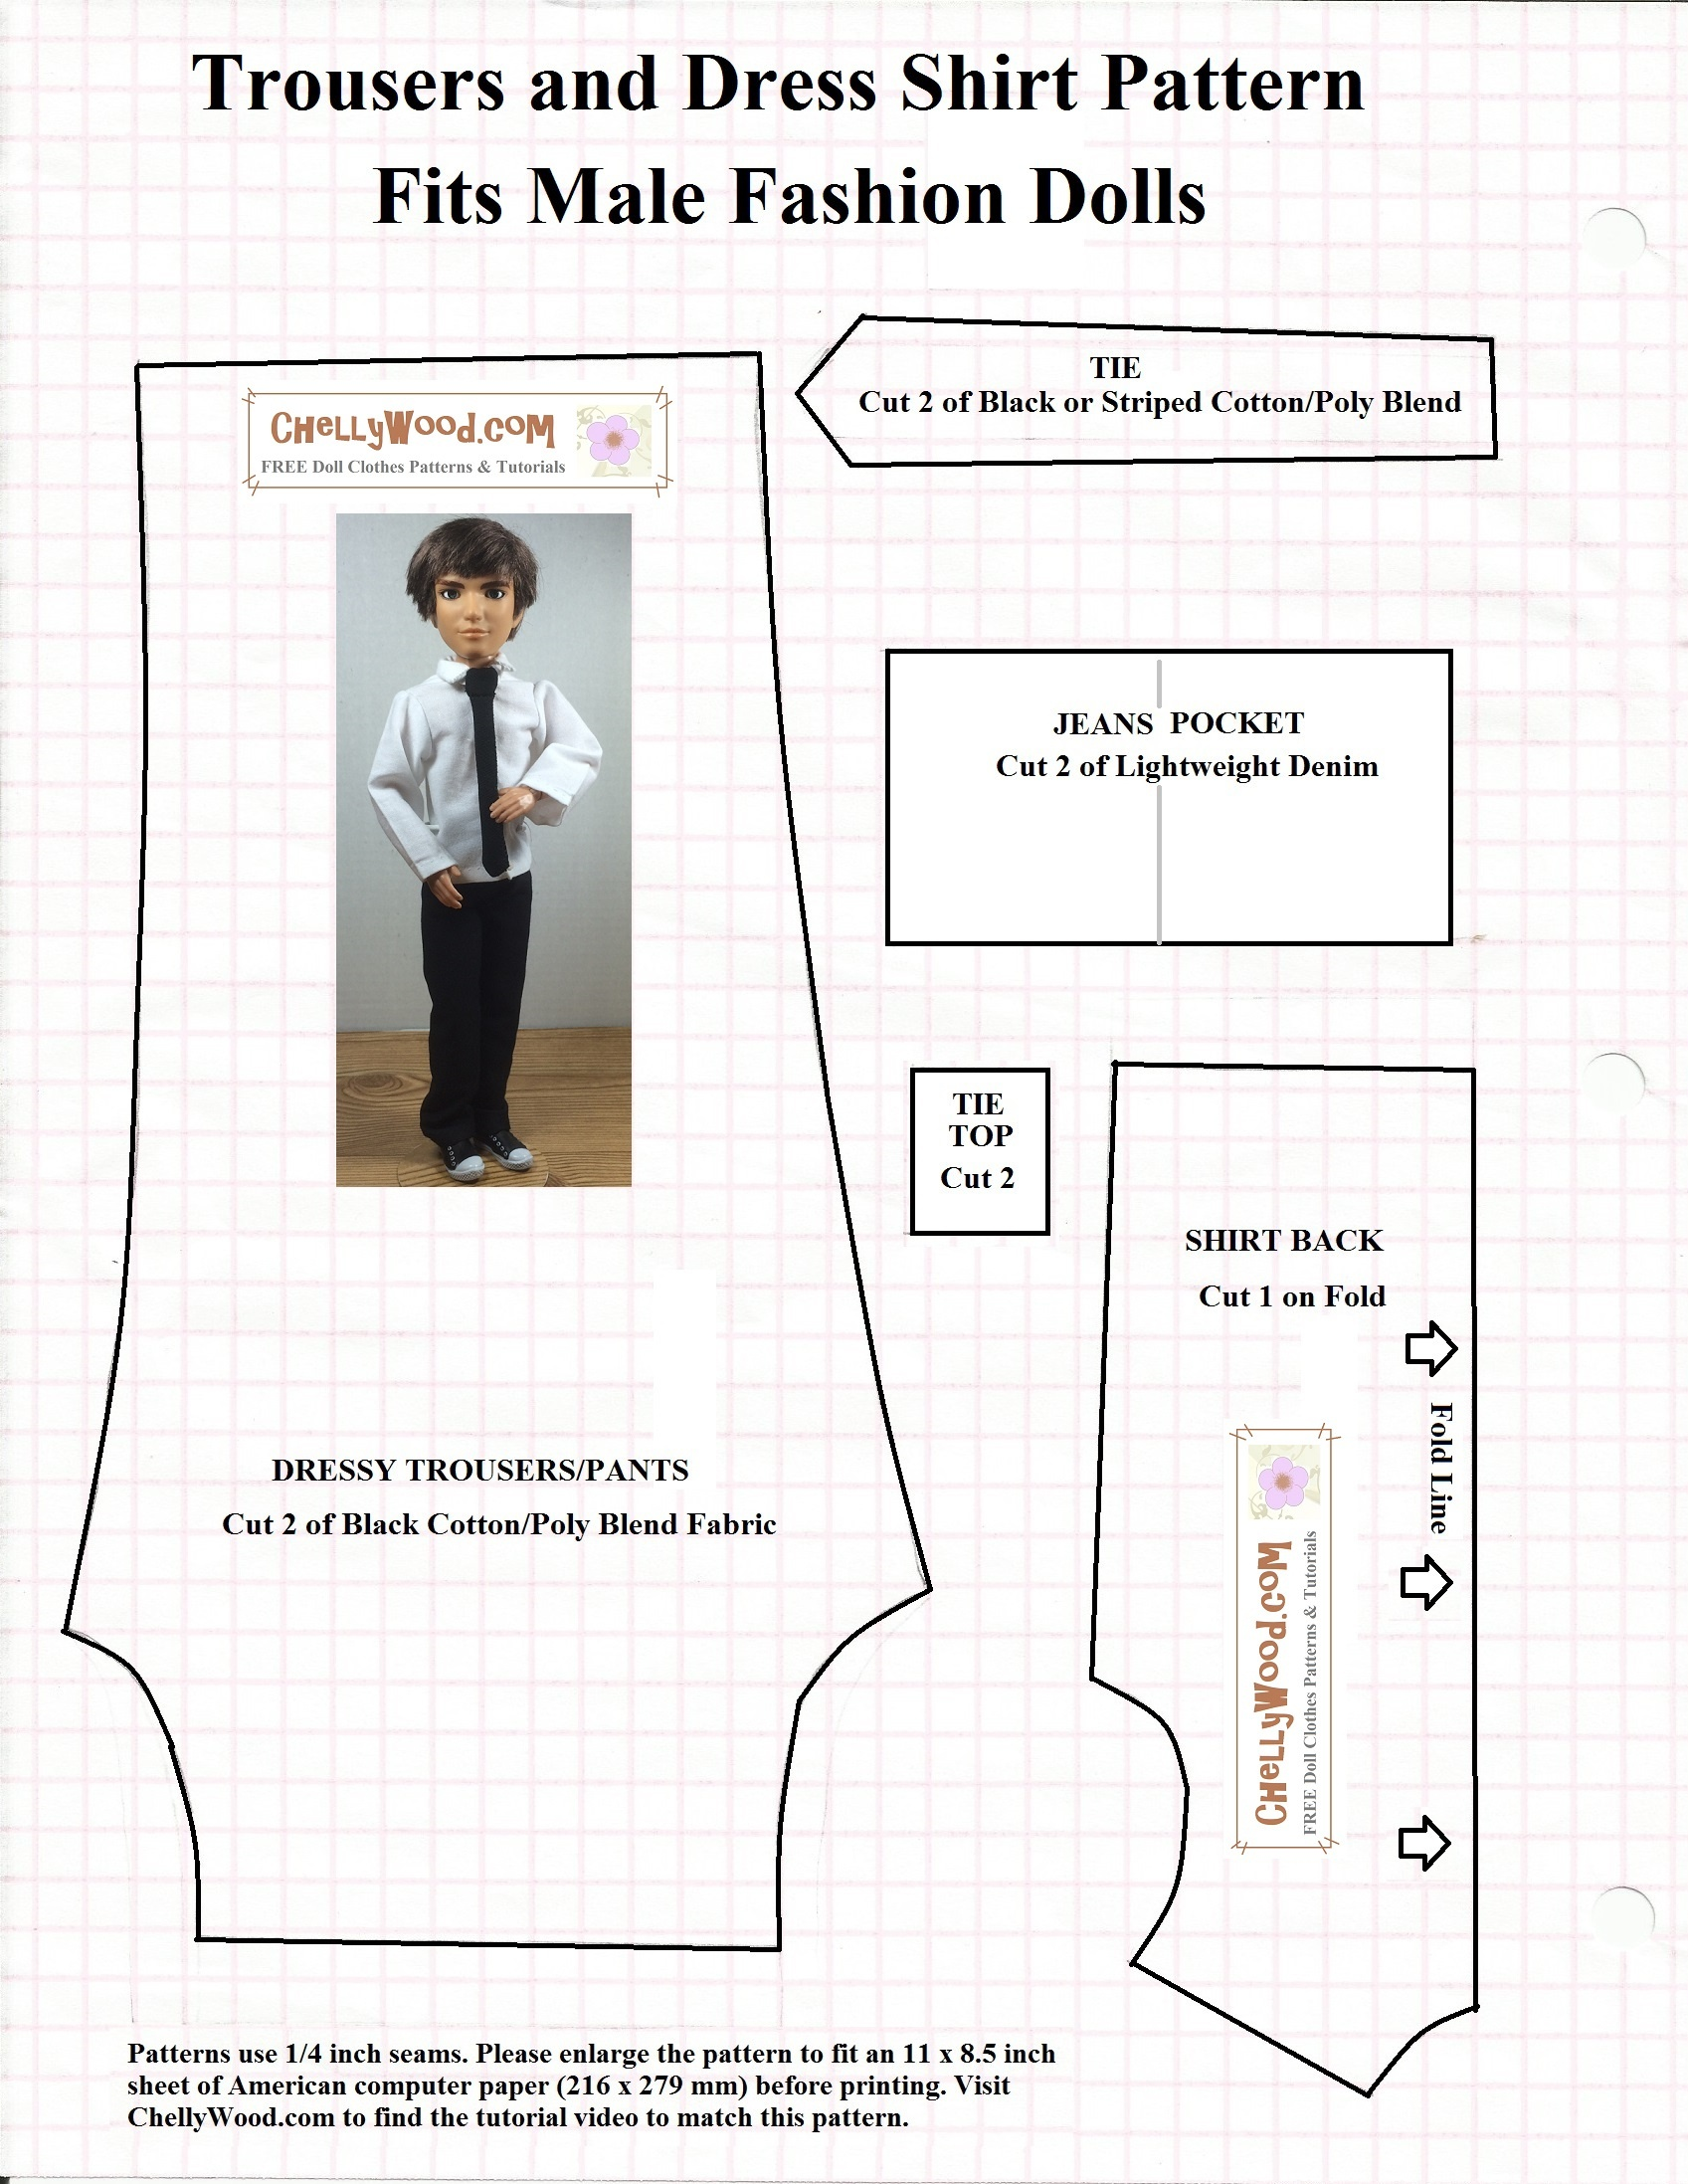 Doll Sewing Patterns Free Printable Sewing Patterns For Ken Dolls - Free Printable Patterns For Sewing Doll Clothes